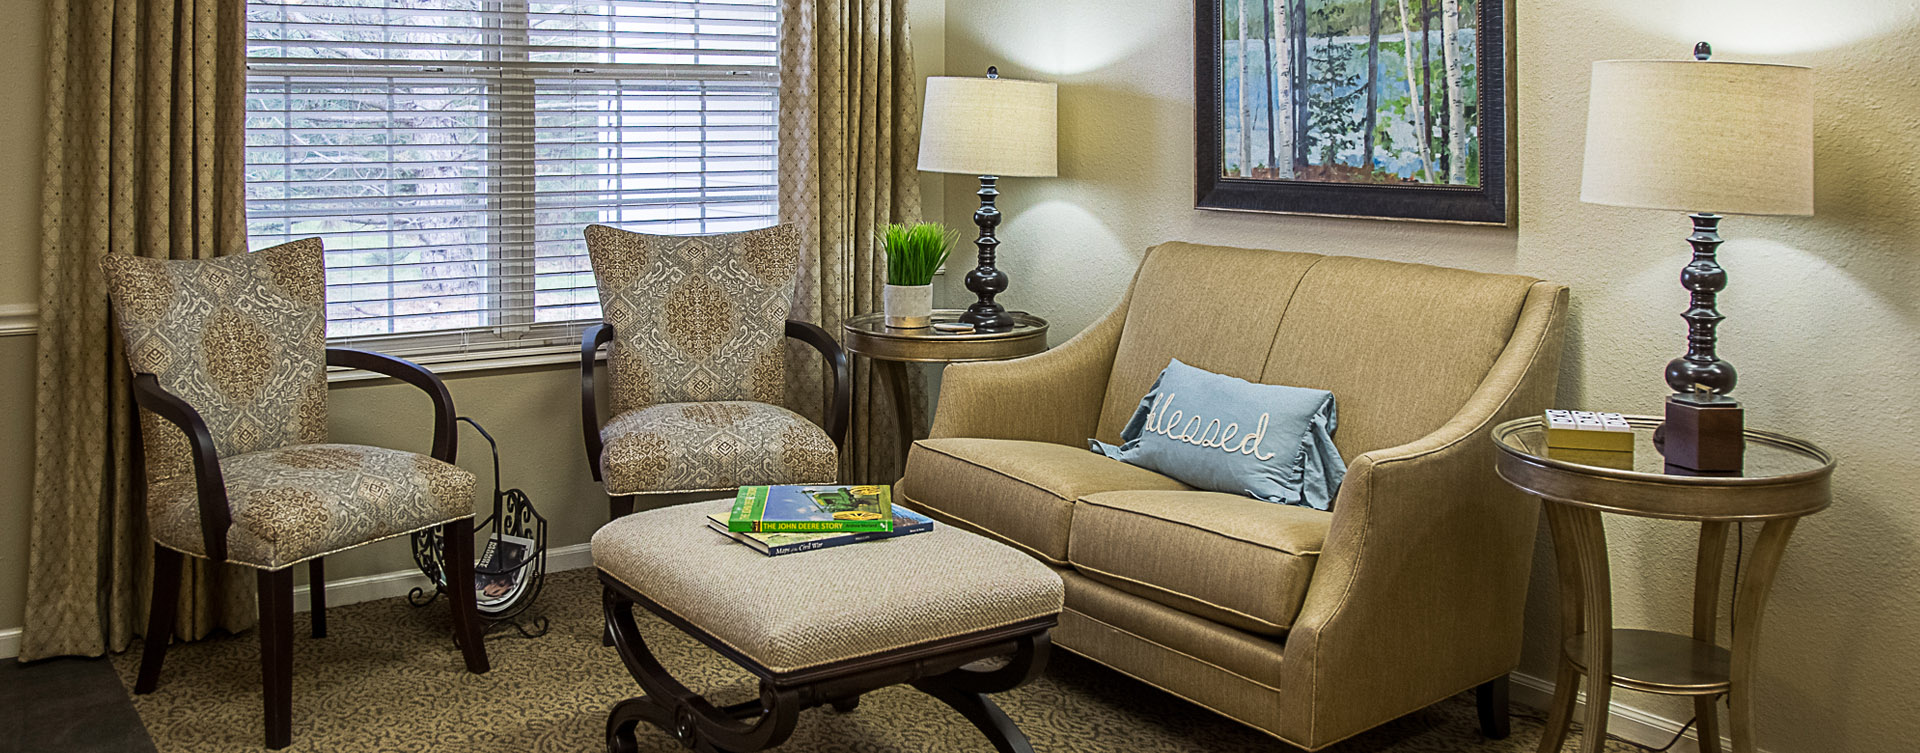 Enjoy a good book in the sitting area at Bickford of Davenport